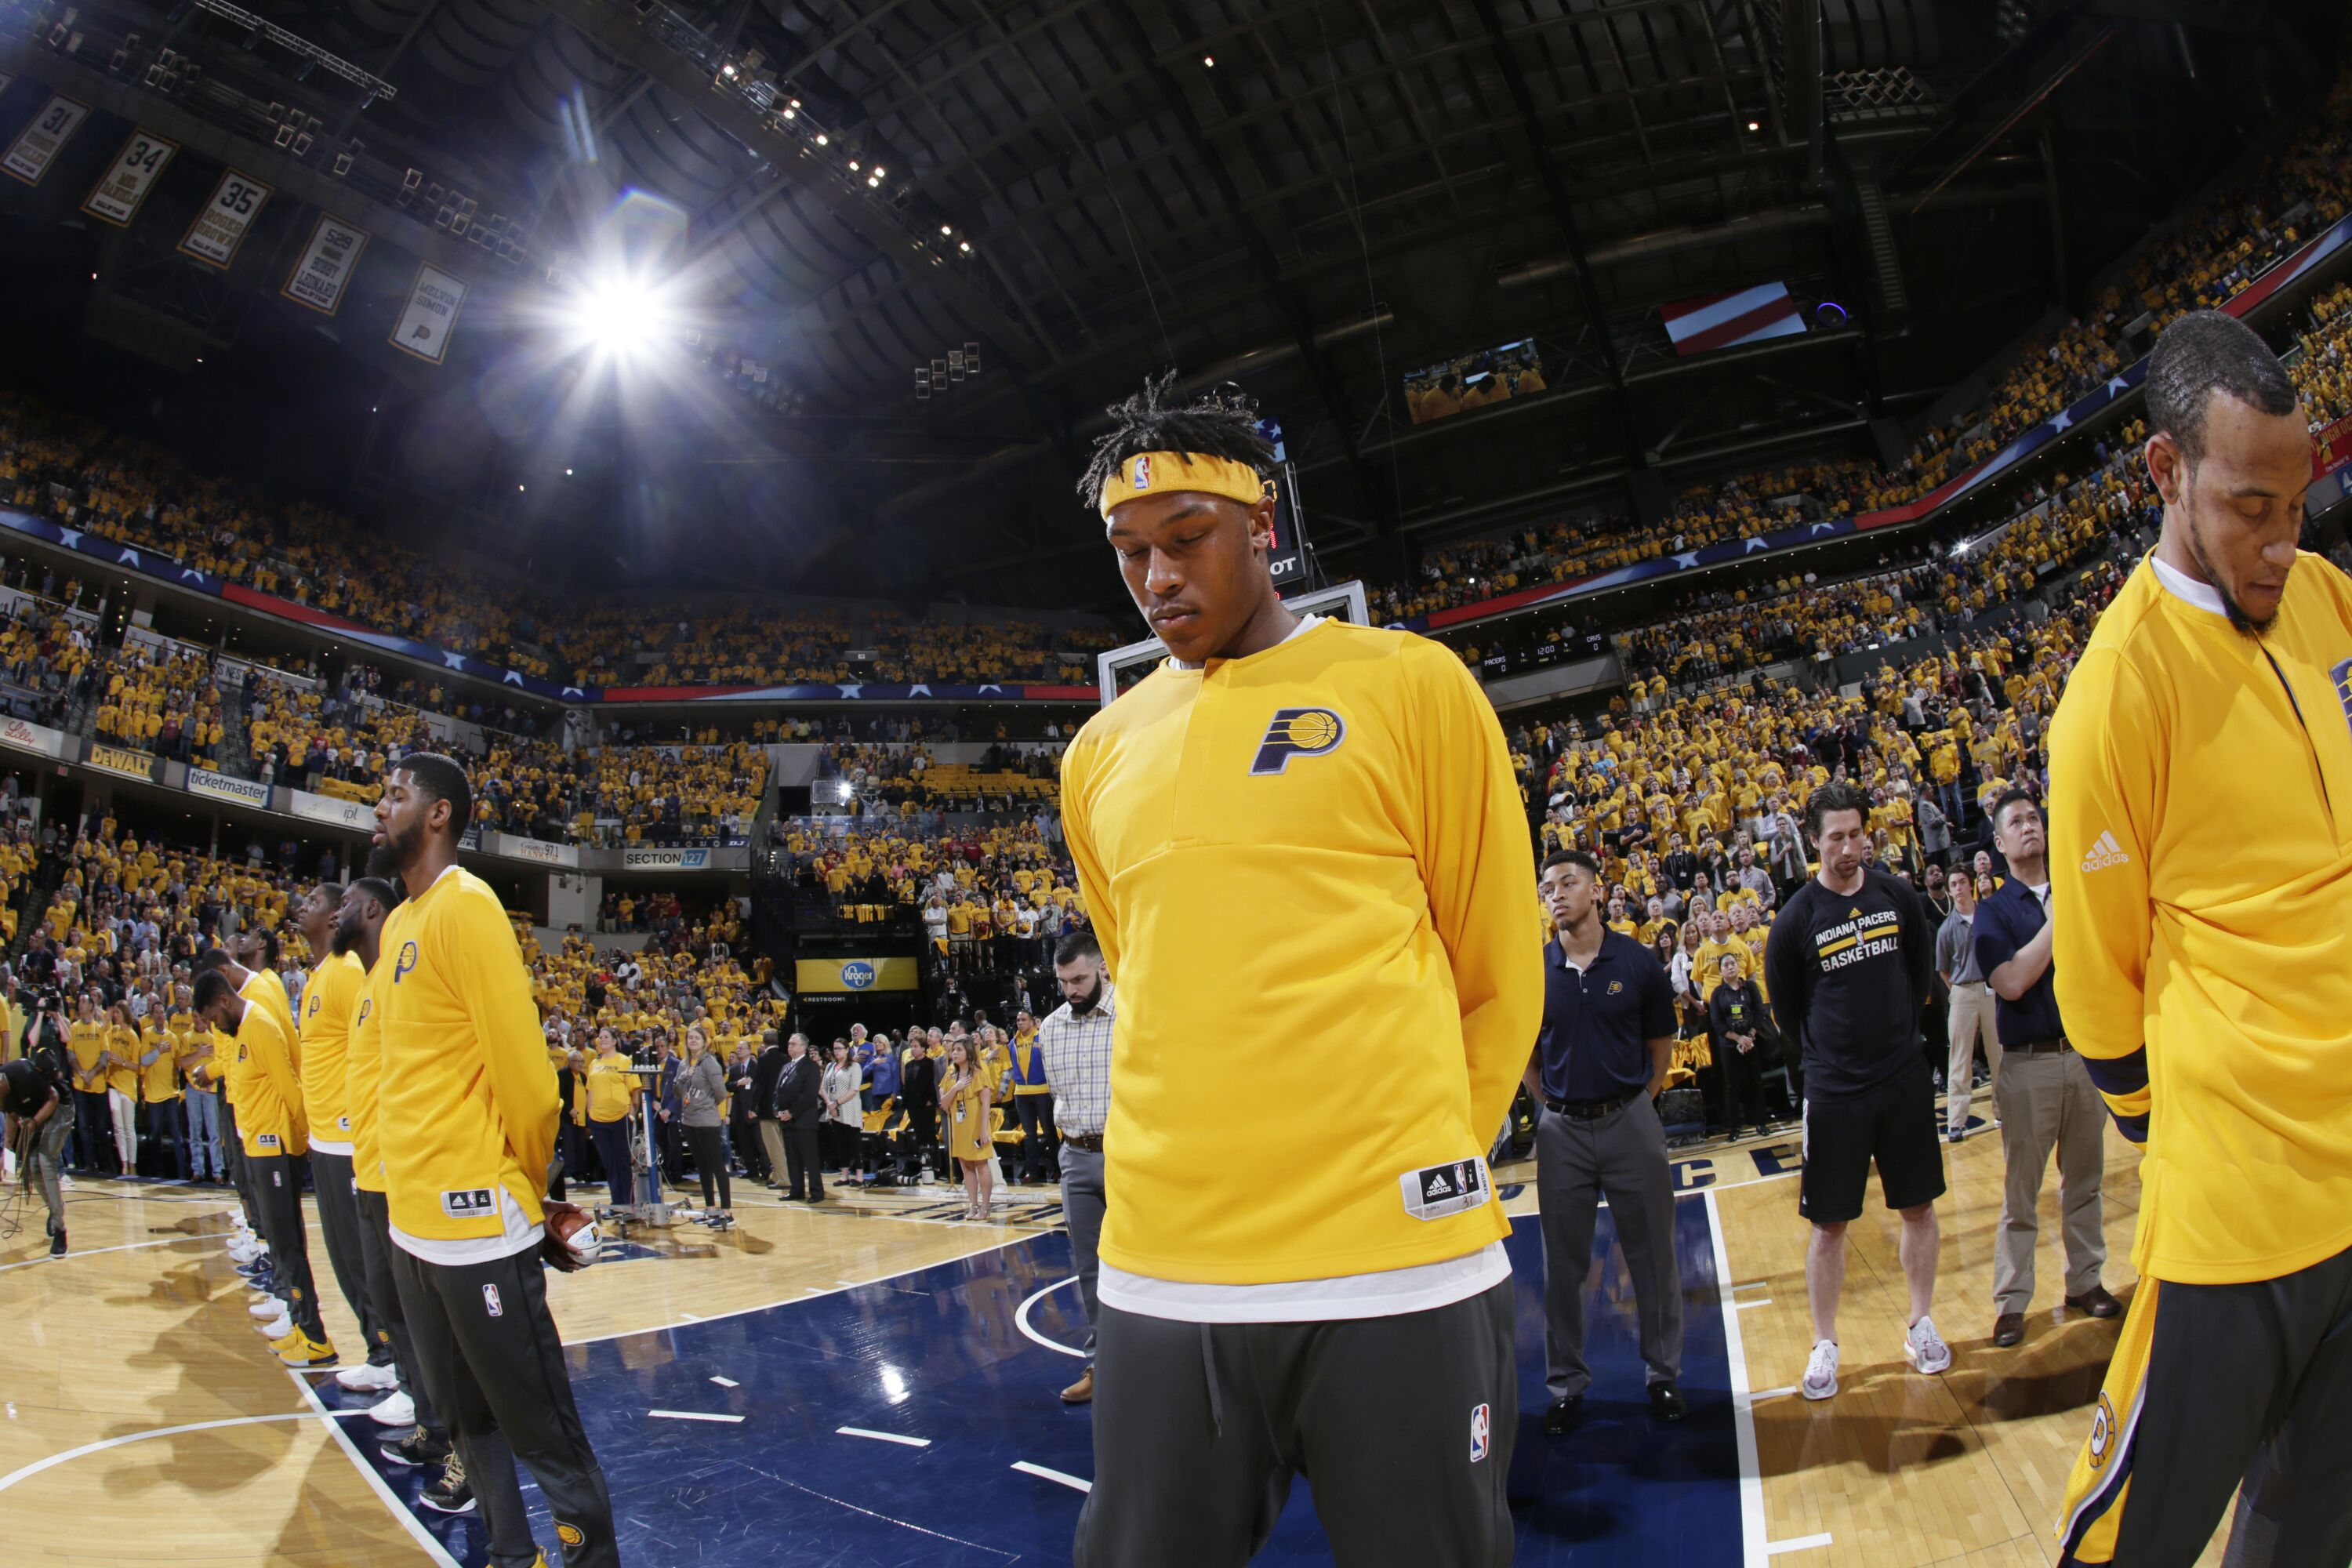 670875256-cleveland-cavaliers-v-indiana-pacers-game-three.jpg